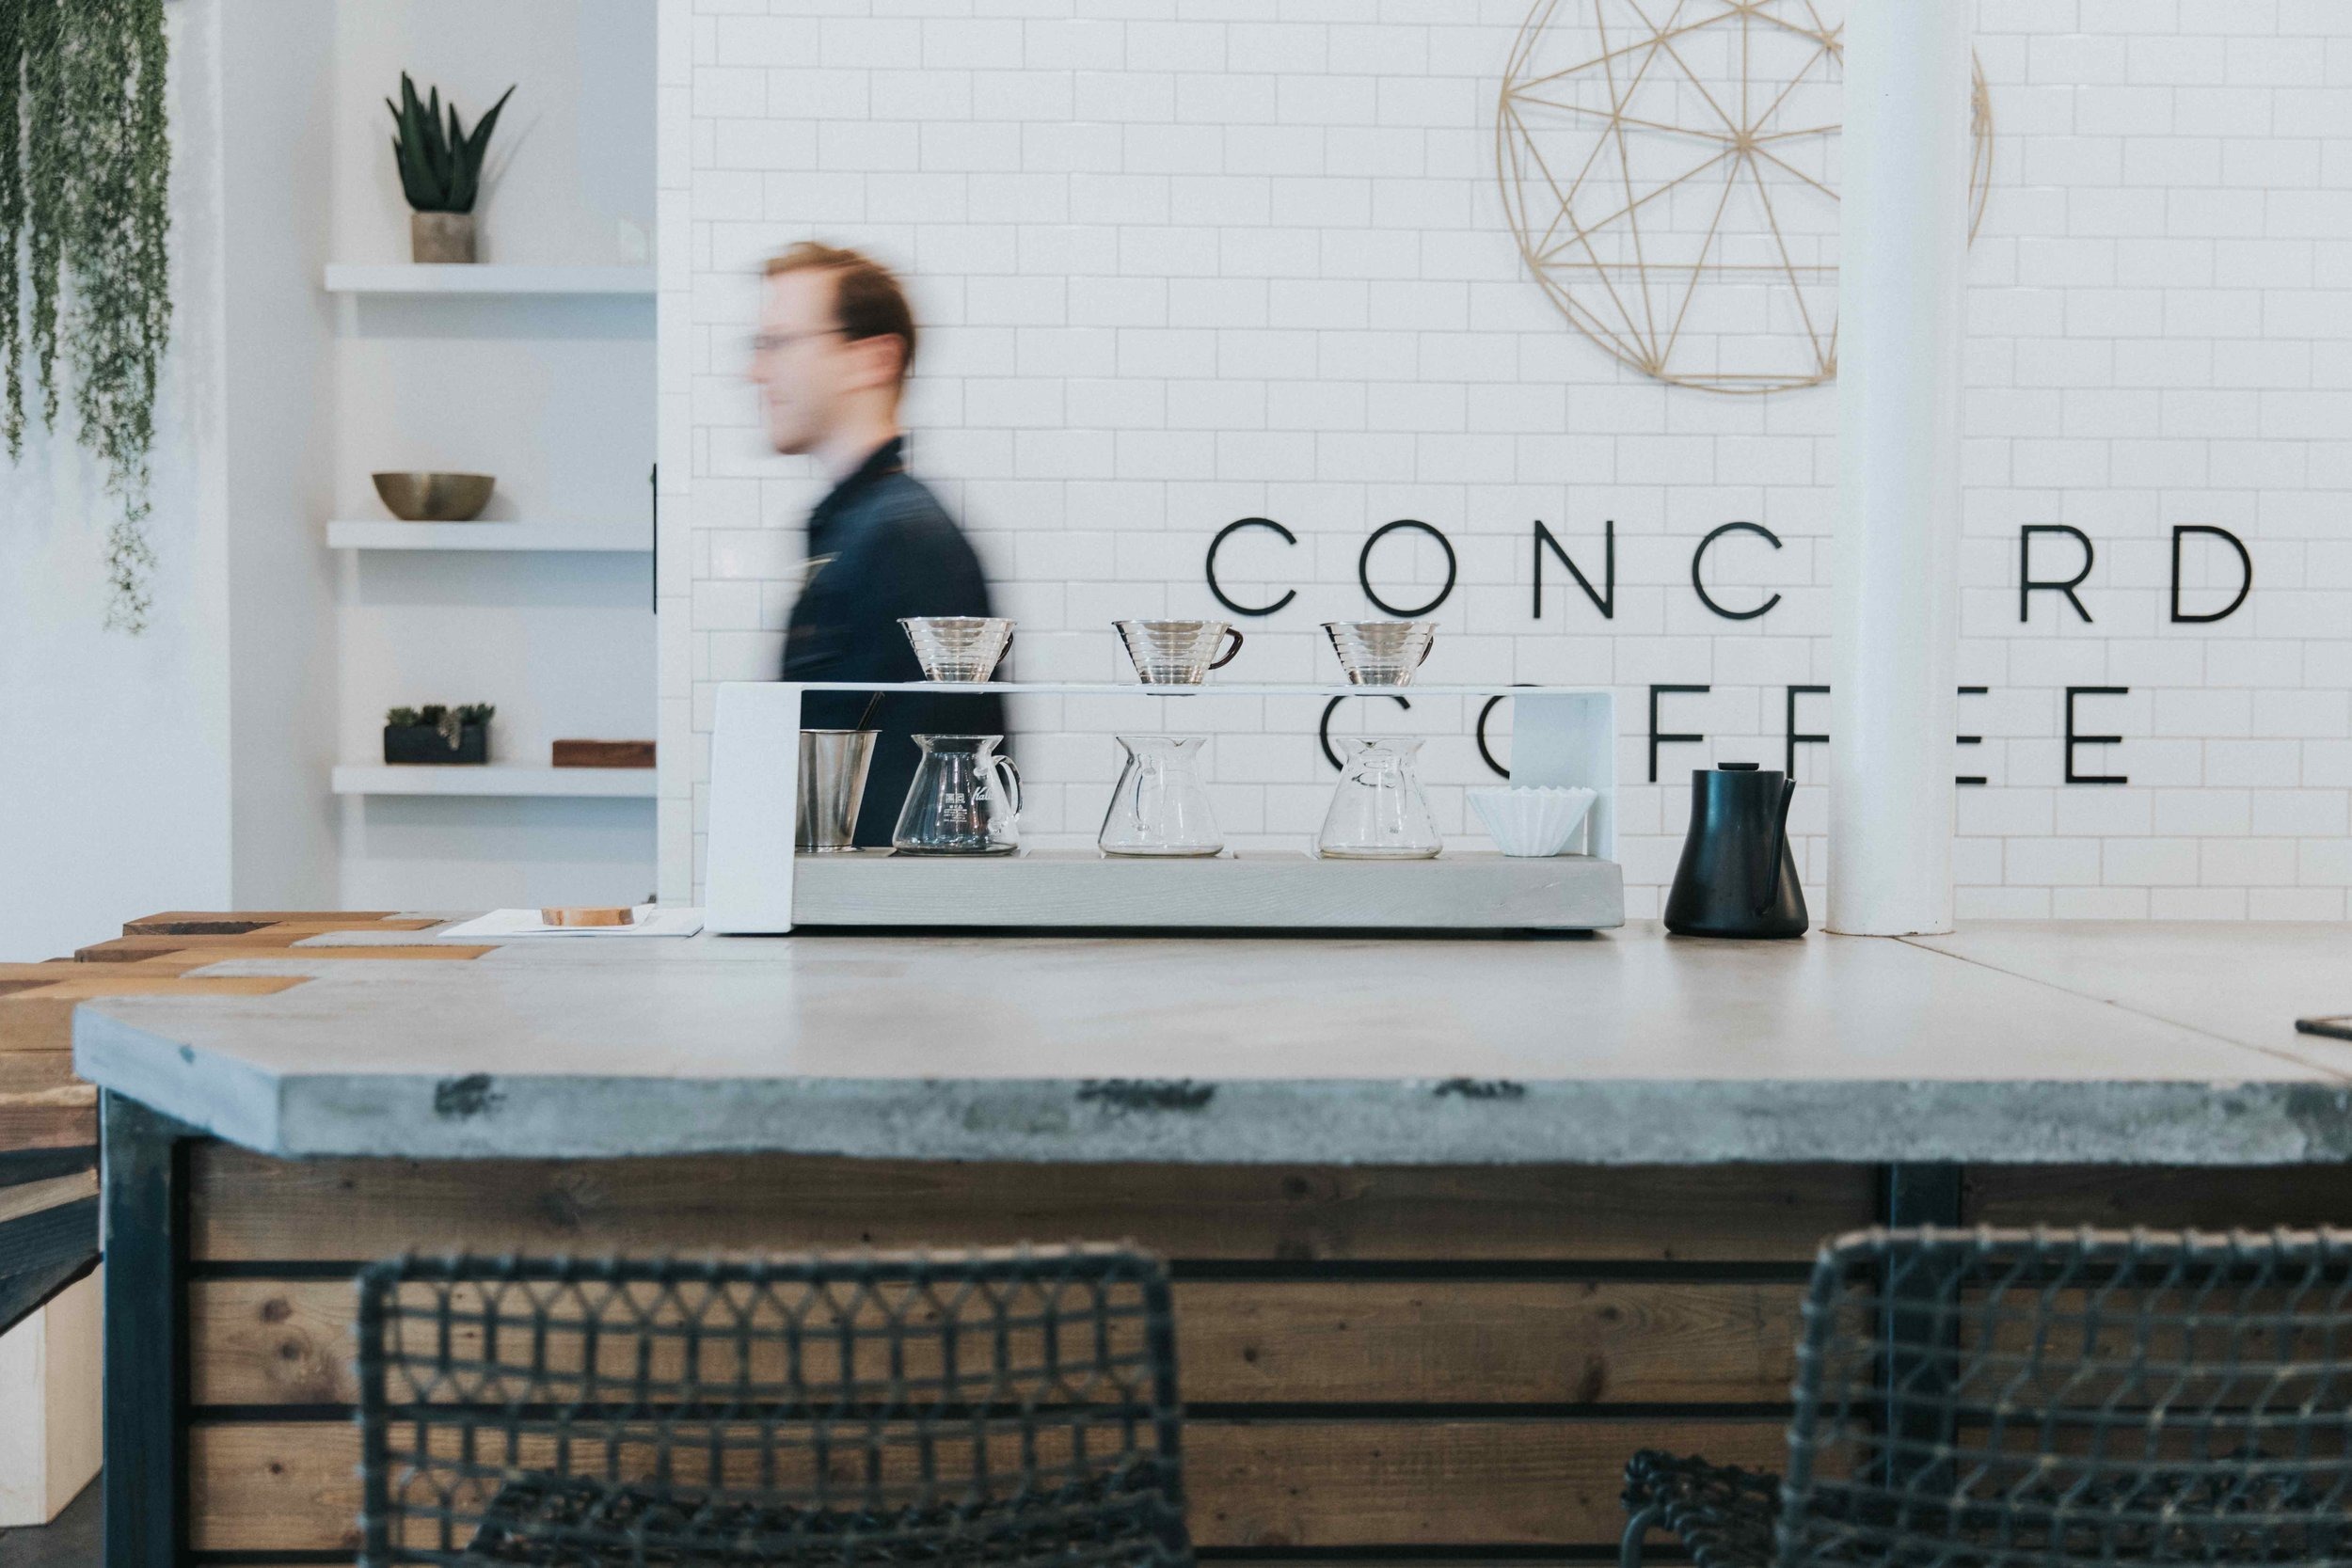 CURRENT + Concord Coffee